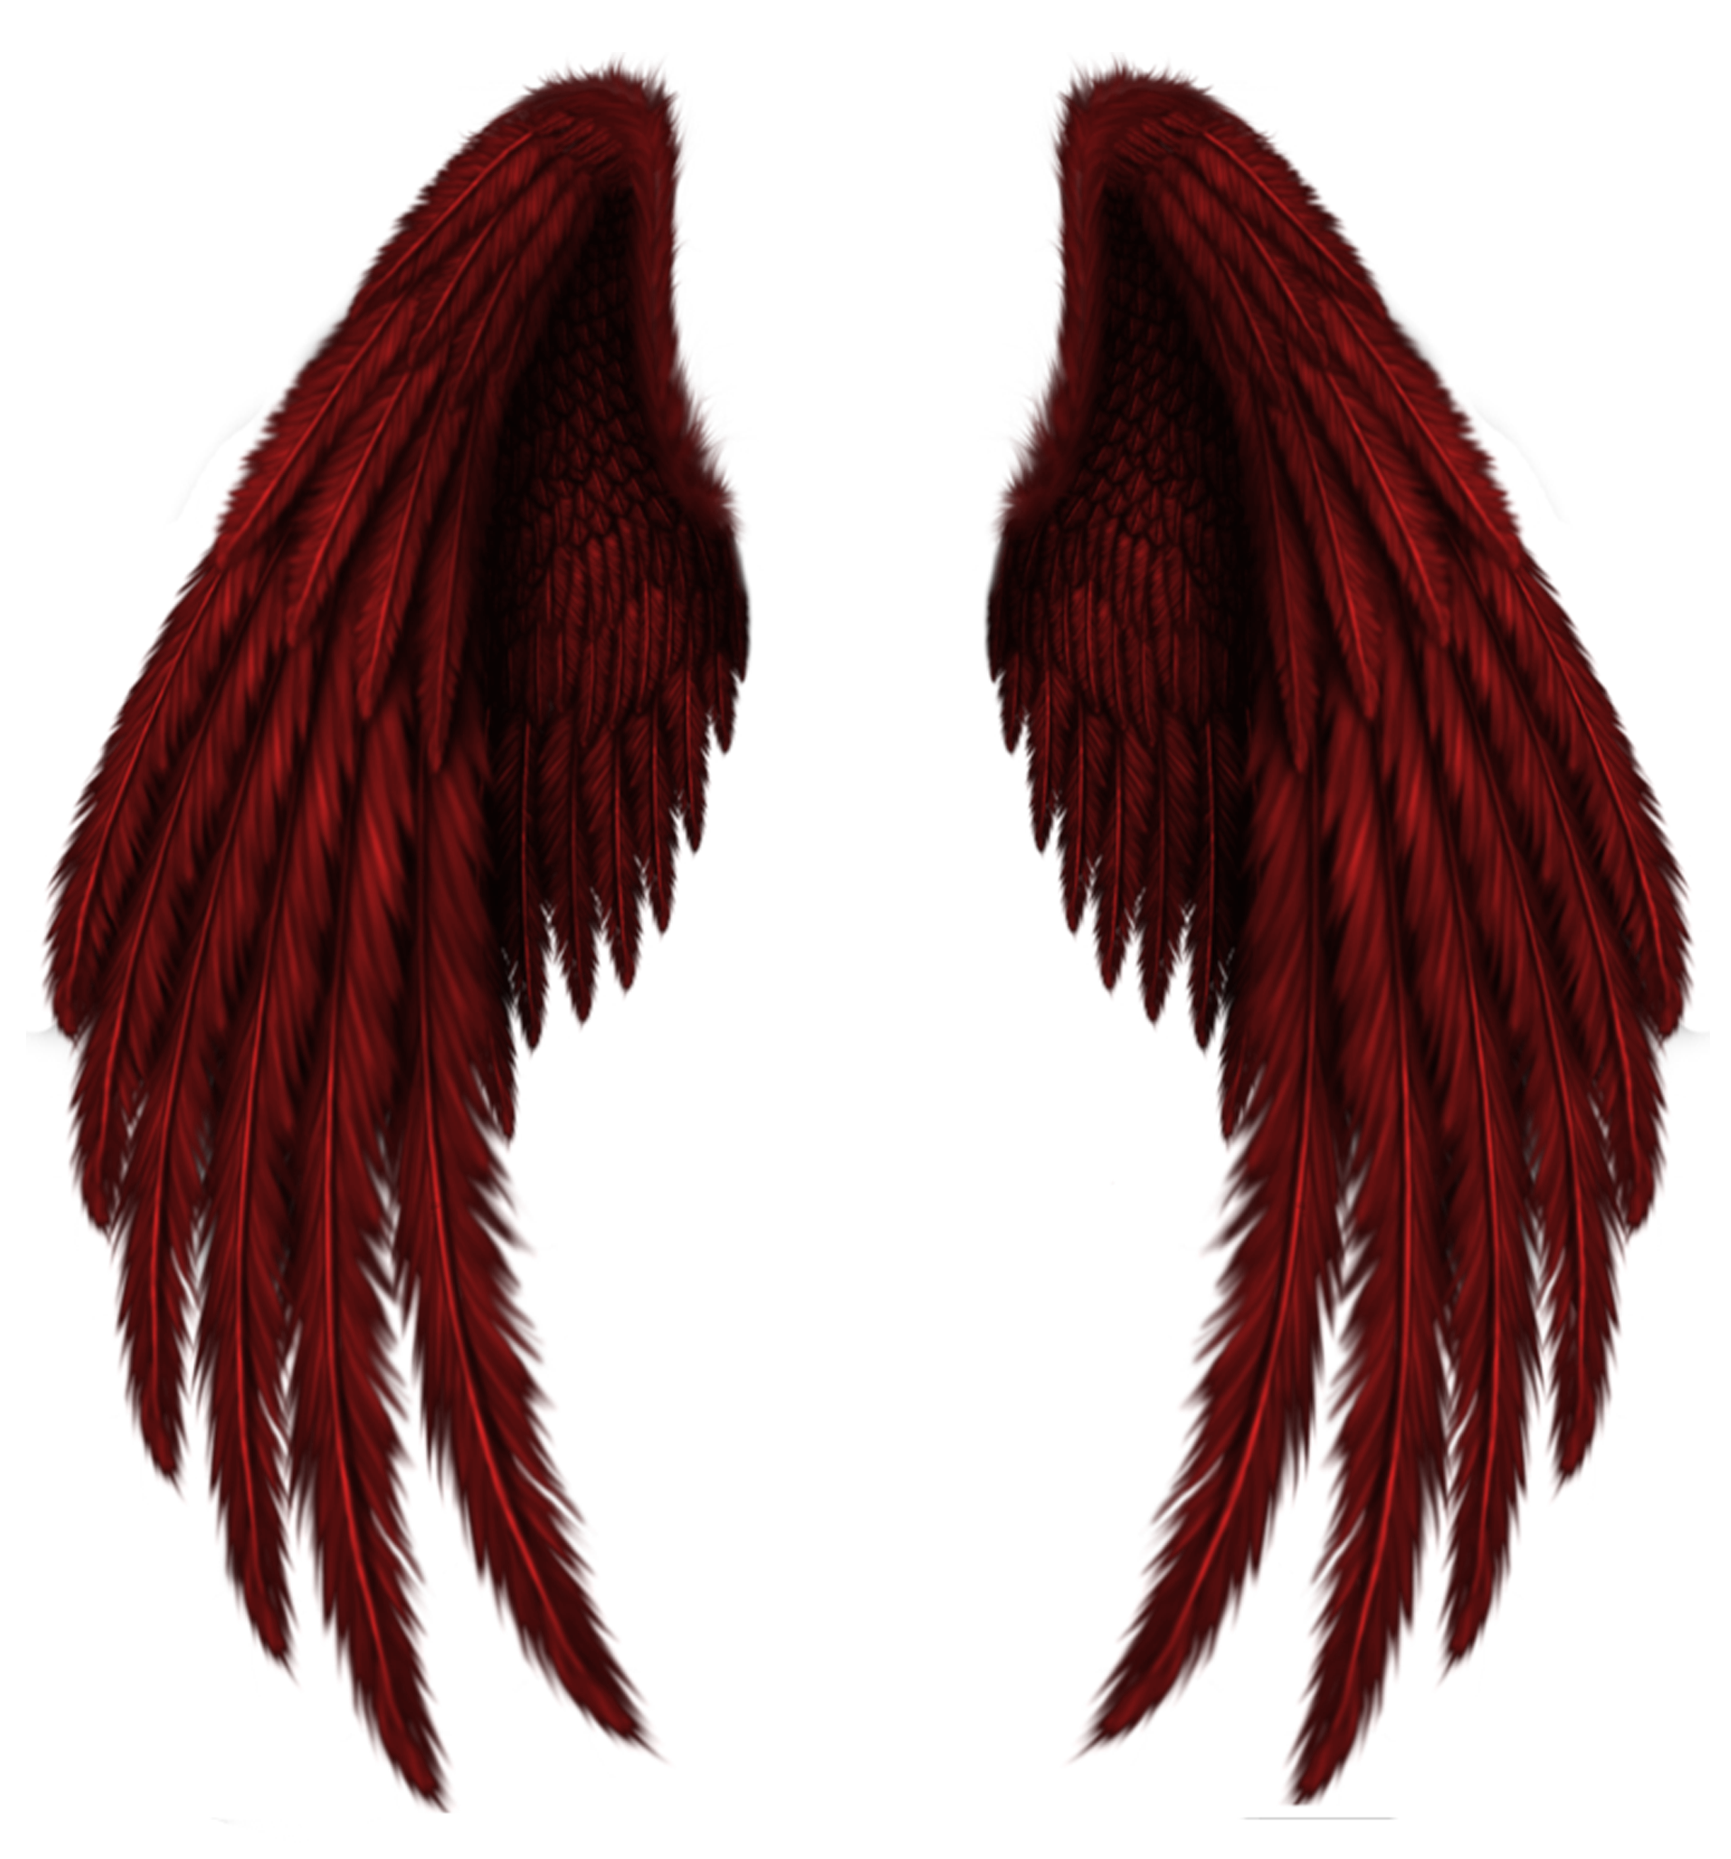 Free wing png. Wings images download angel